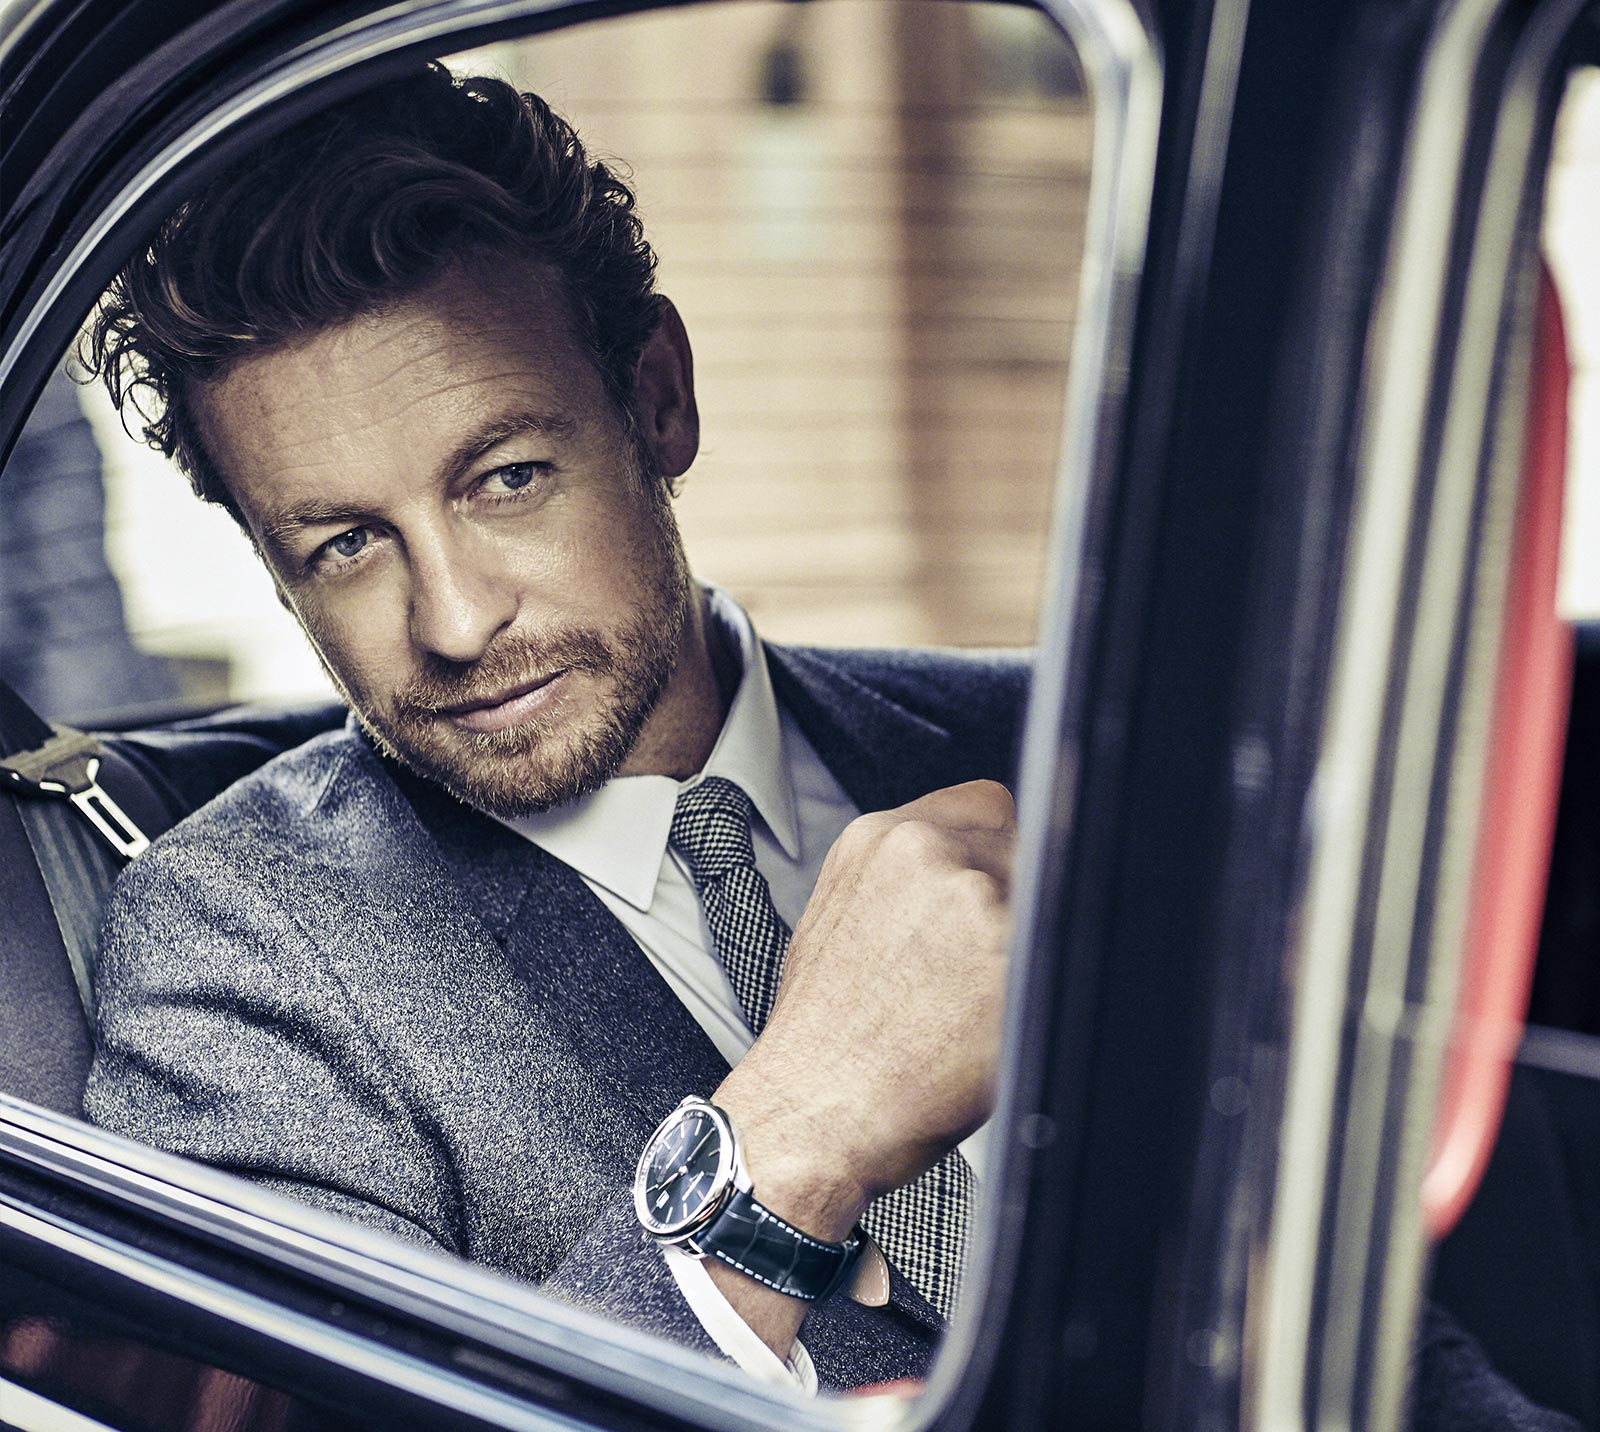 Simon Baker ambassador of the Conquest Classic watch